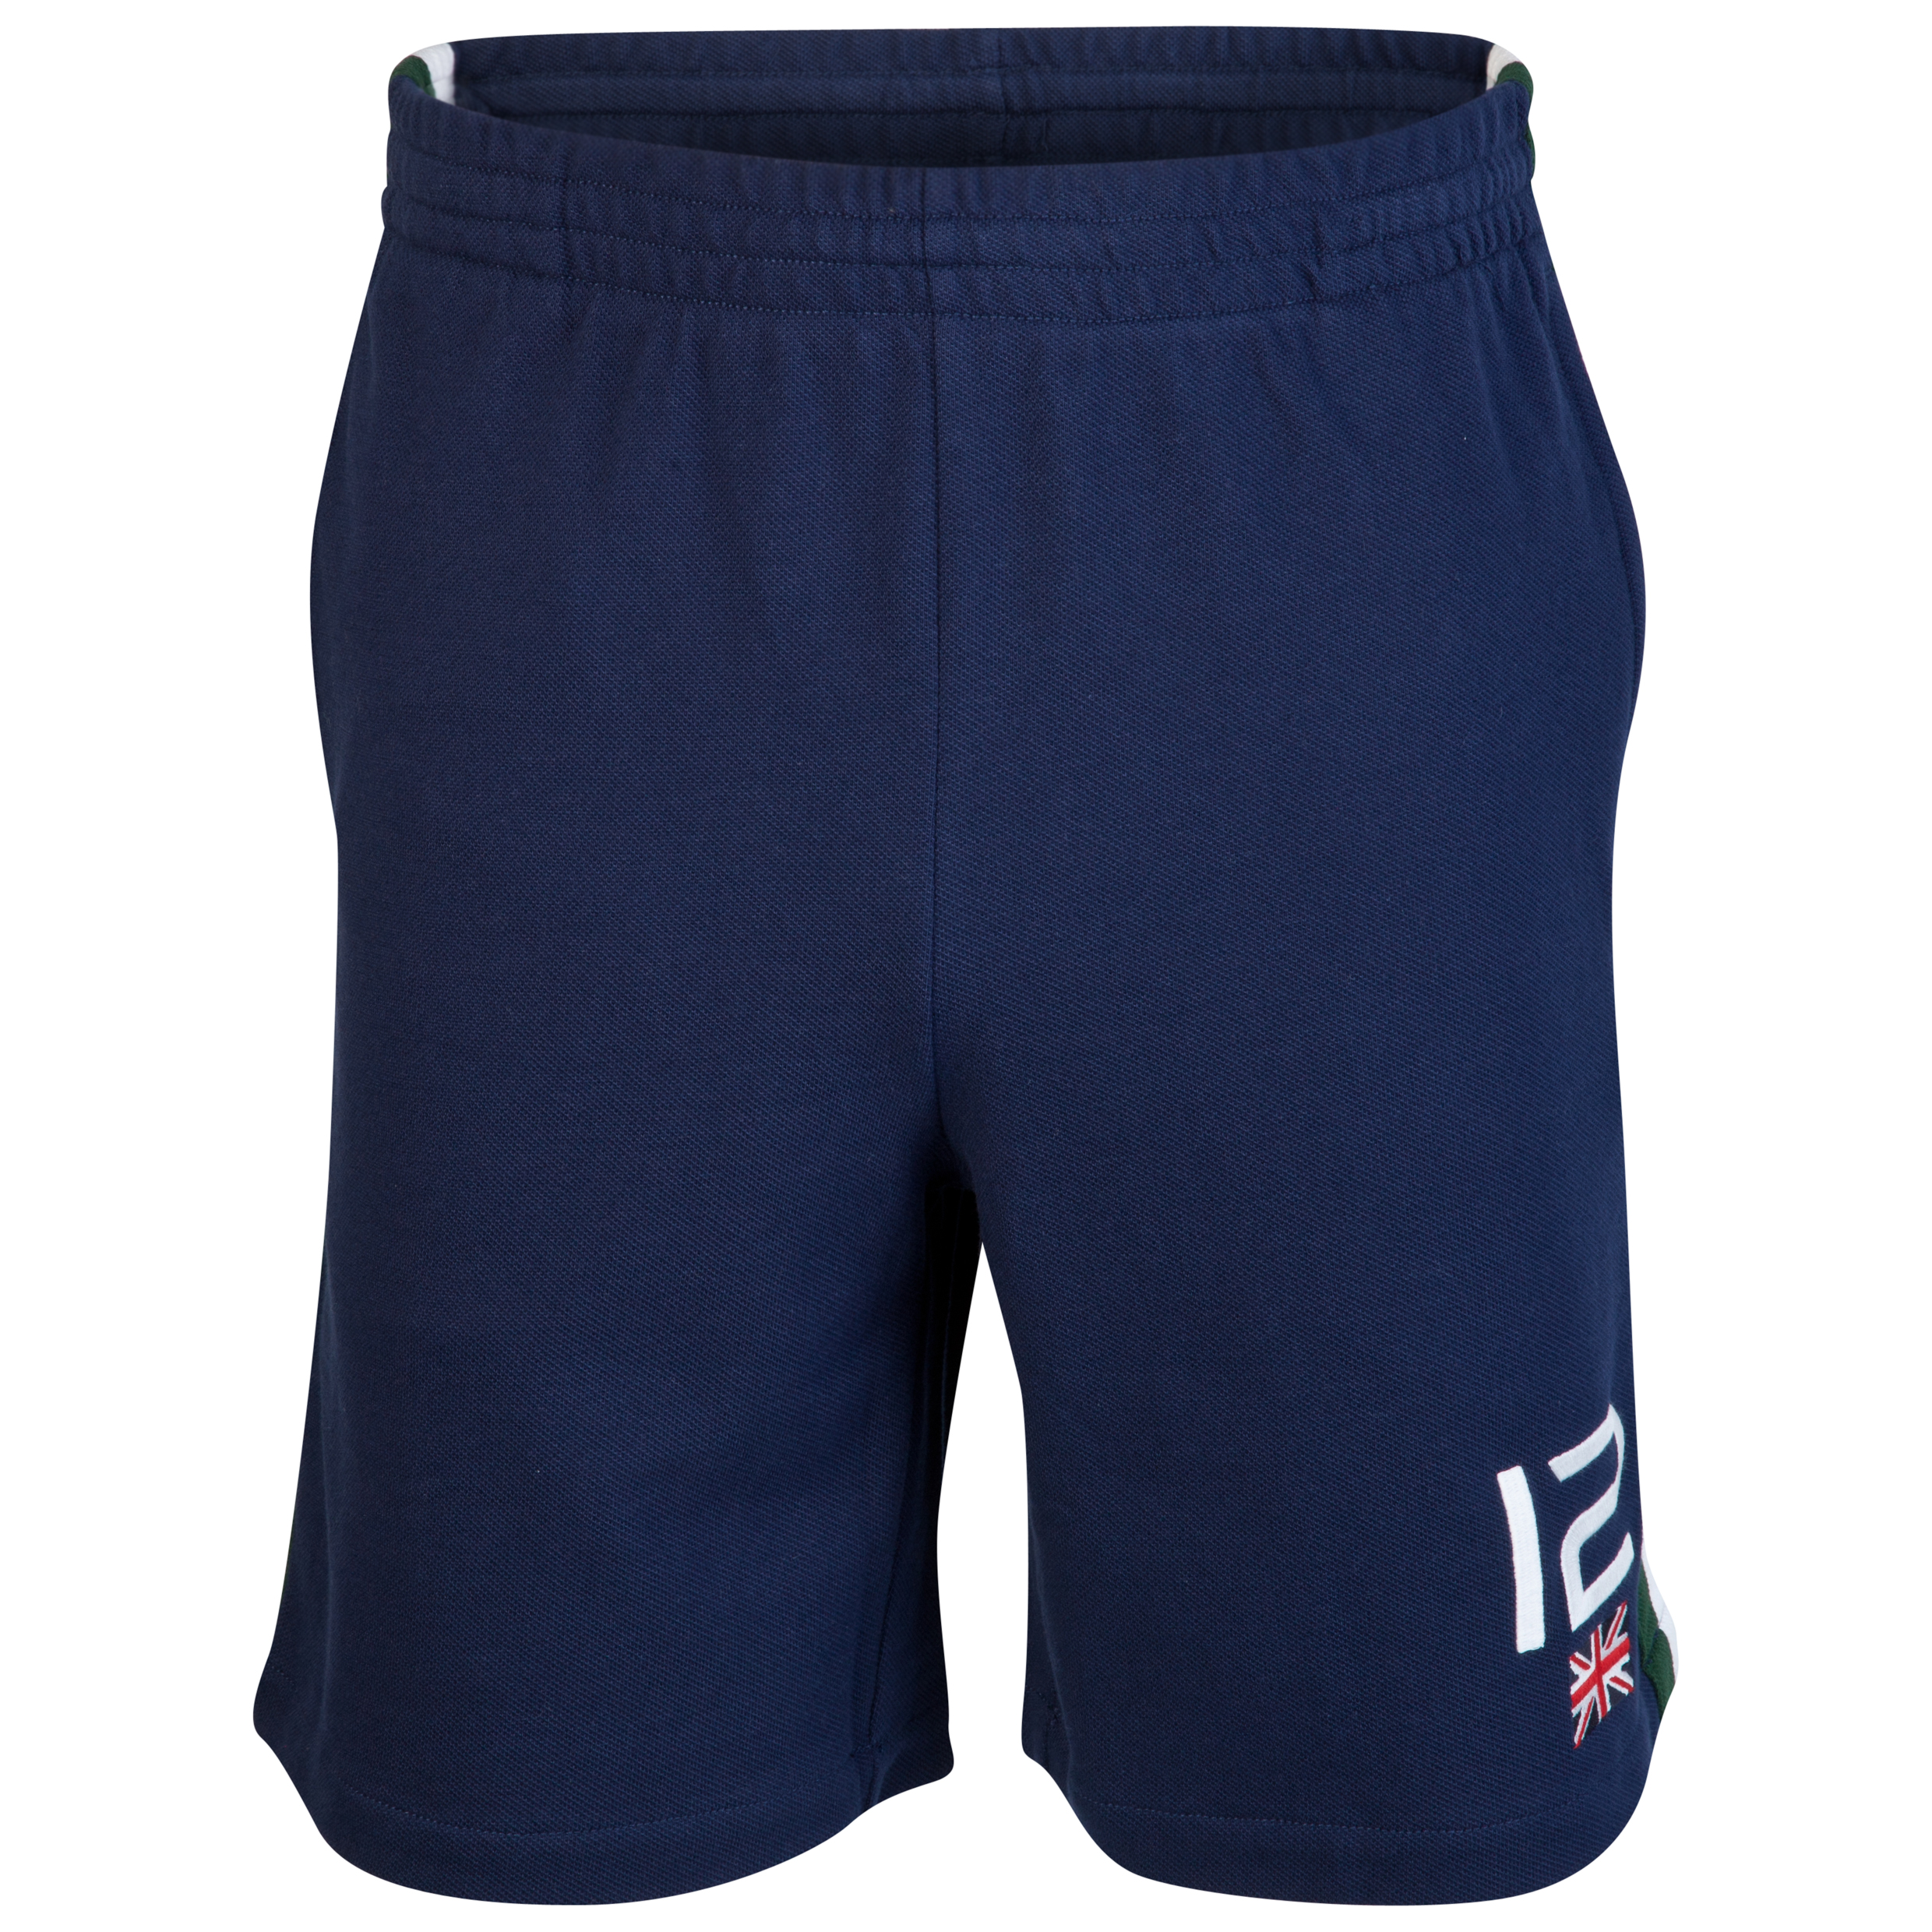 Polo Ralph Lauren Polo Shorts - French Navy